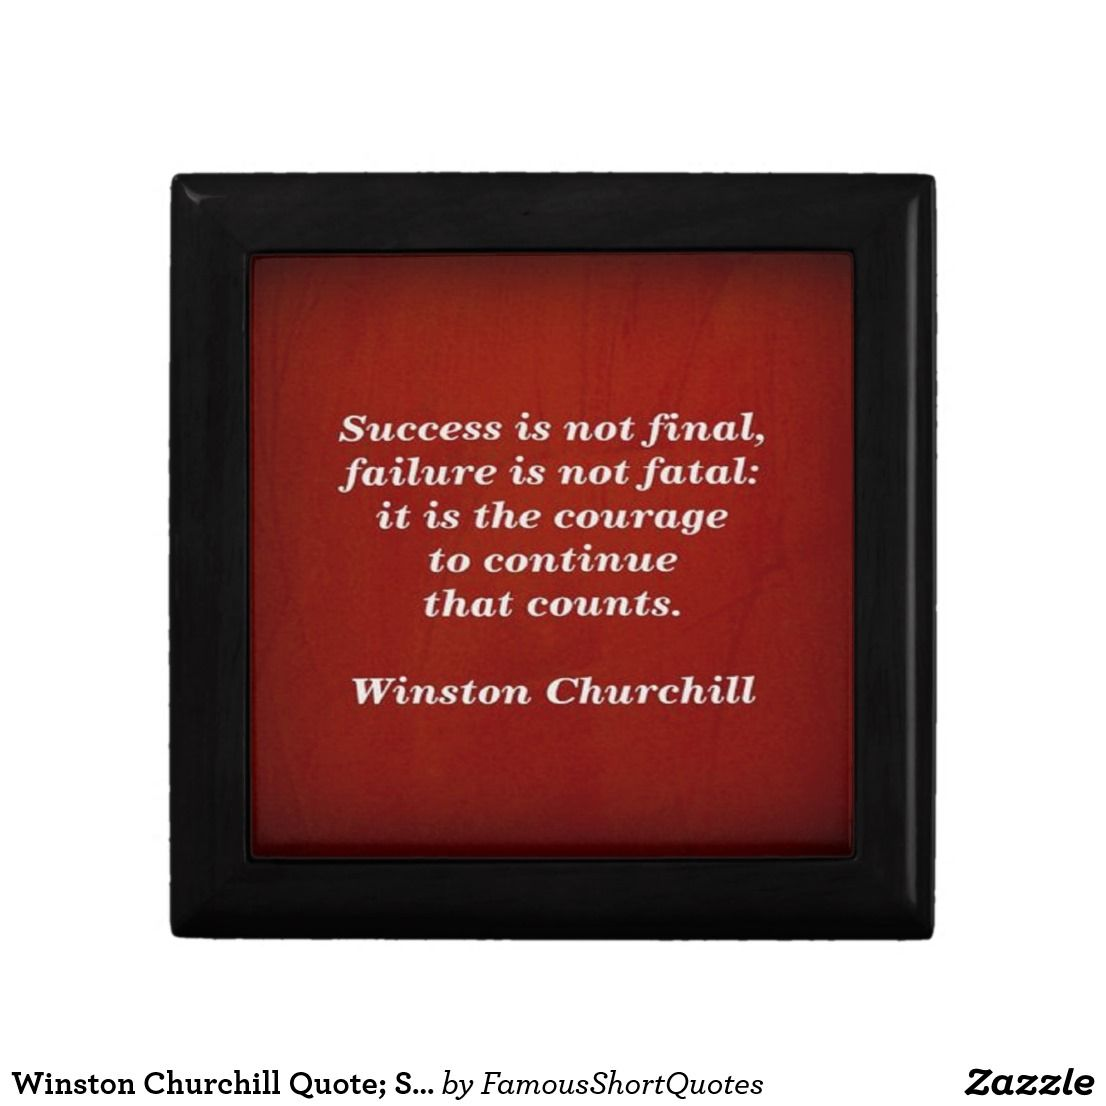 Famous Quotes About Success Winston Churchill Quote Success Jewelry Box  Famous Short Quotes .